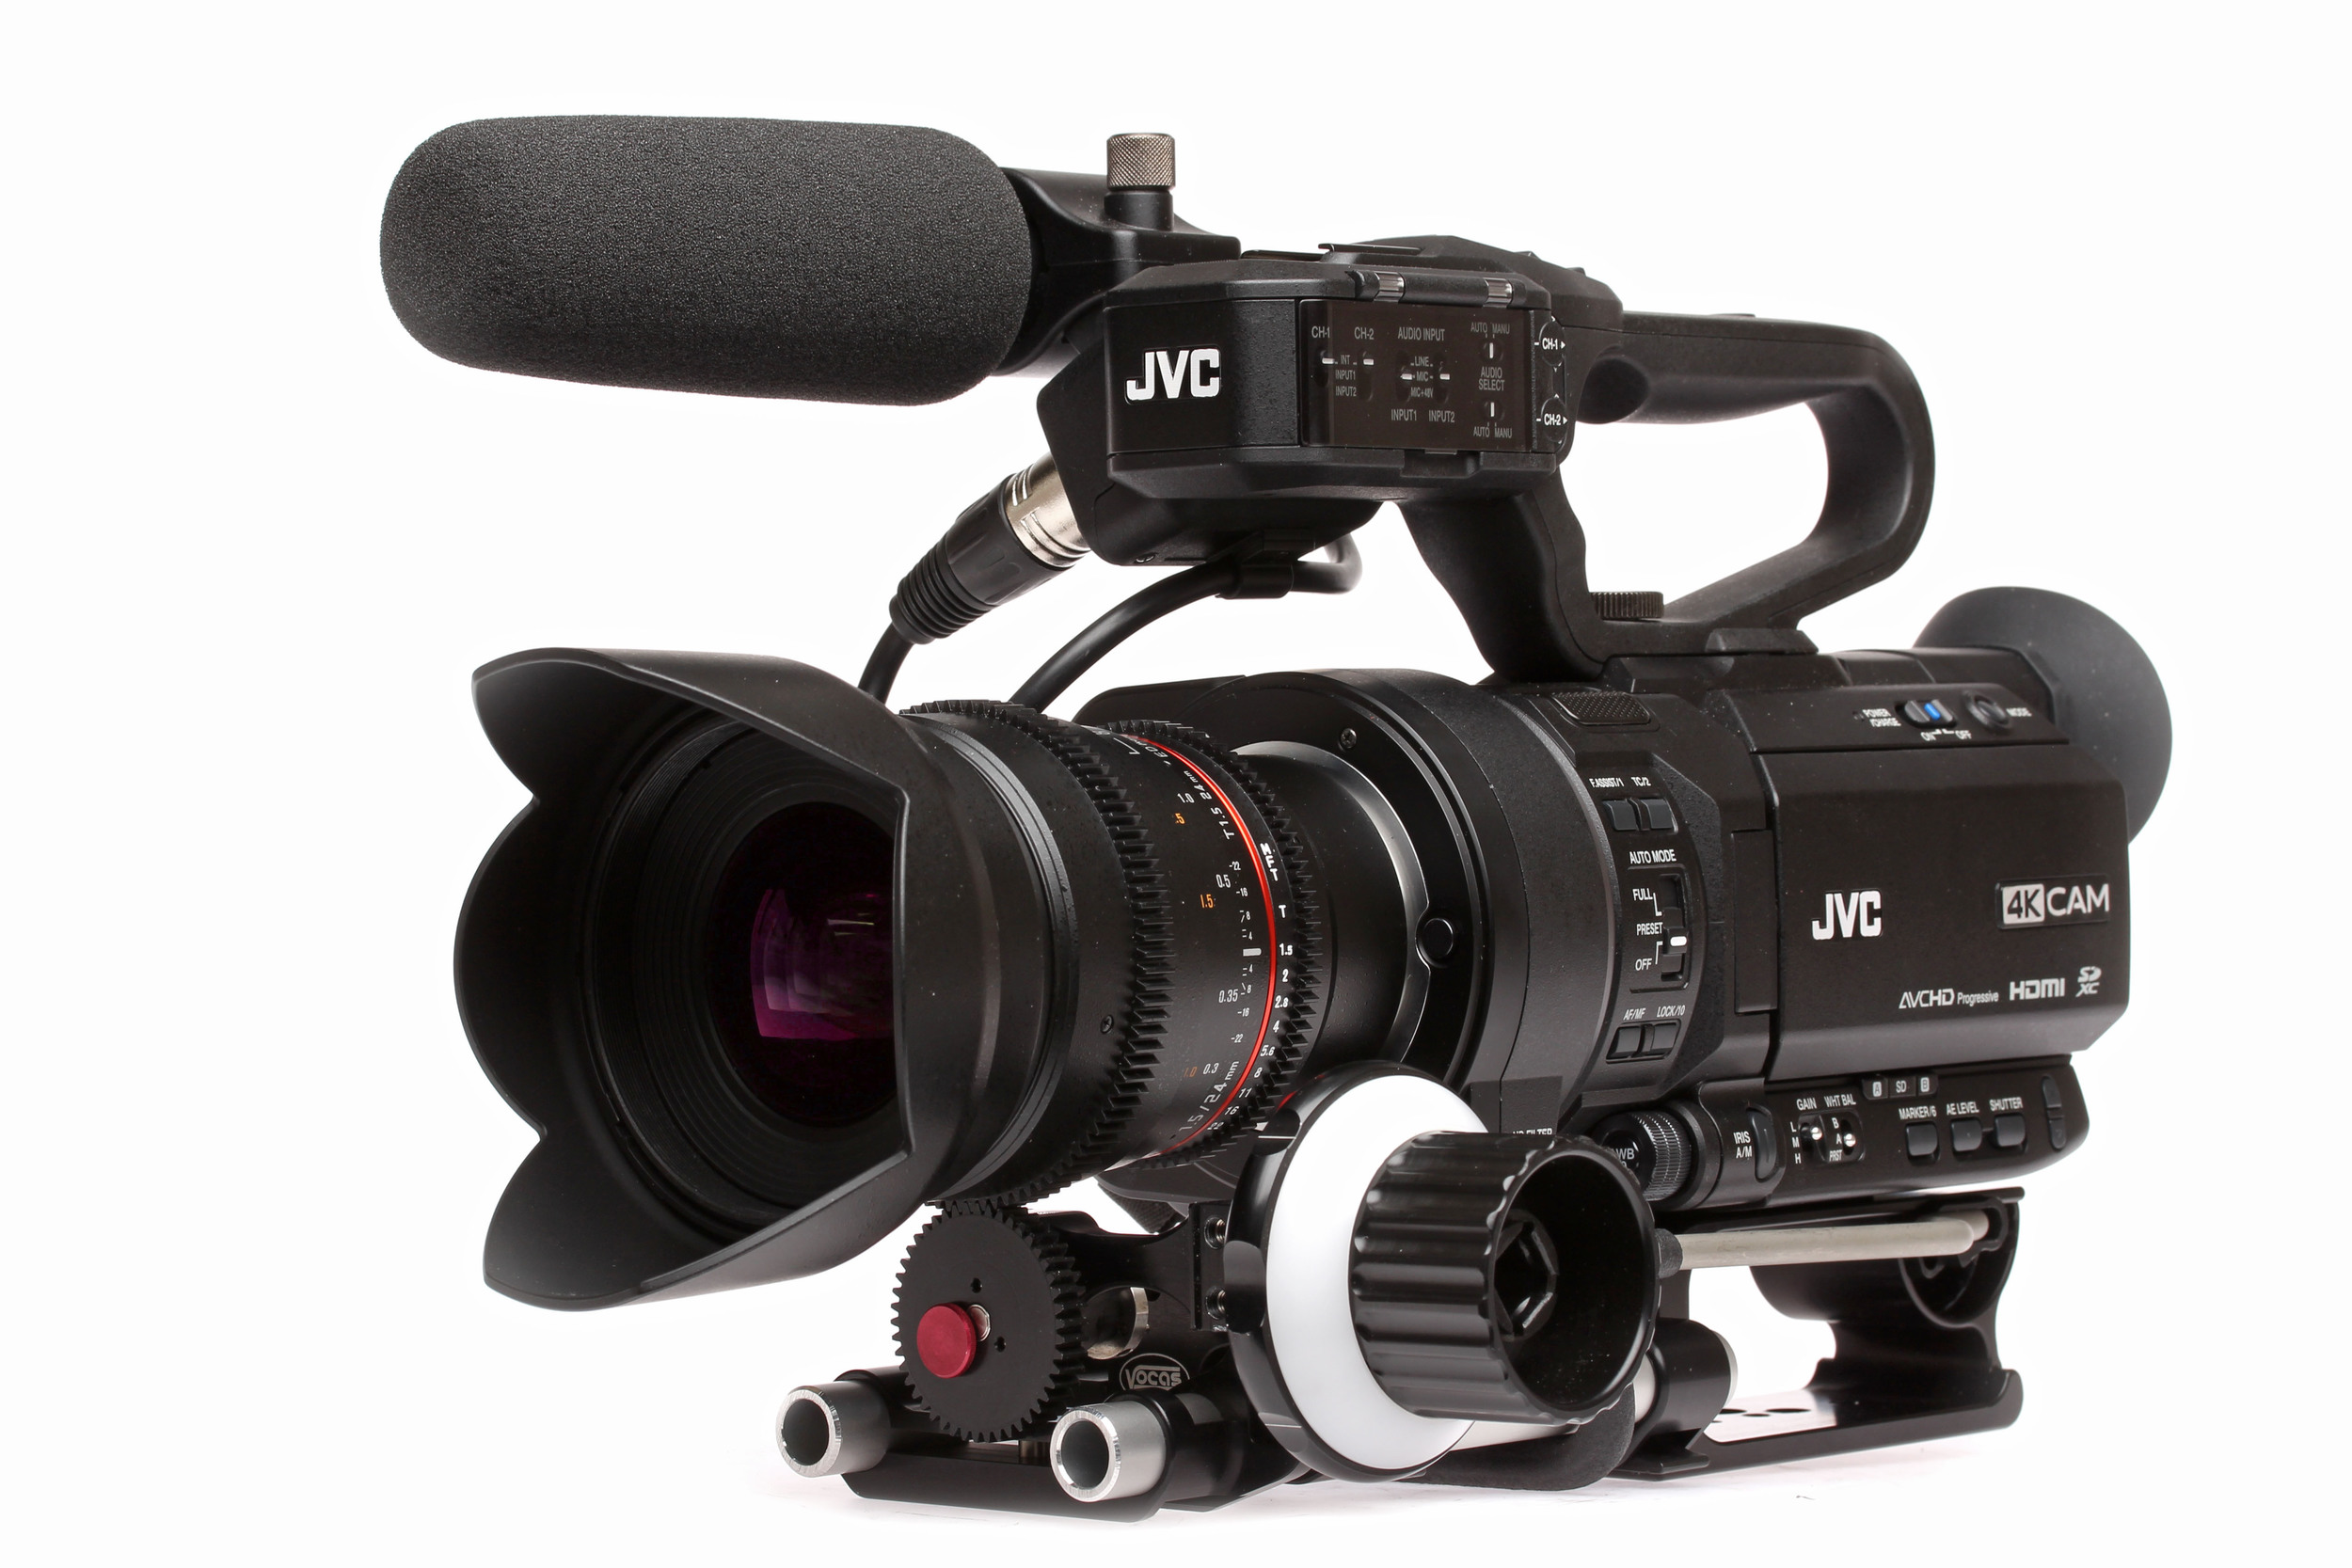 From JVC Pro with adapter and EF lens